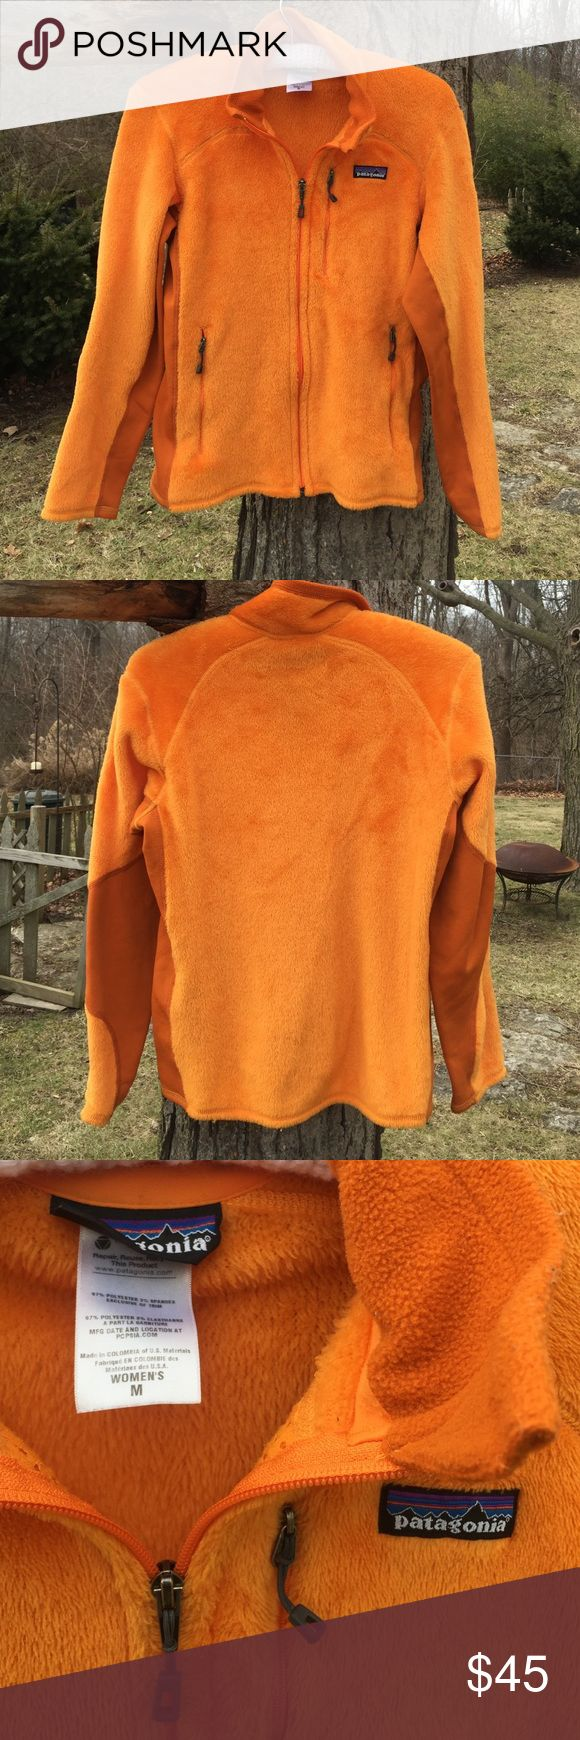 Patagonia Zip-Up Fleece Woman's medium zip-up Patagonia in bright orange! 97%Polyester/3%Spandex. Inside shows mesh liner on both sides of zipper. Super warm and comfortable! Patagonia Jackets & Coats